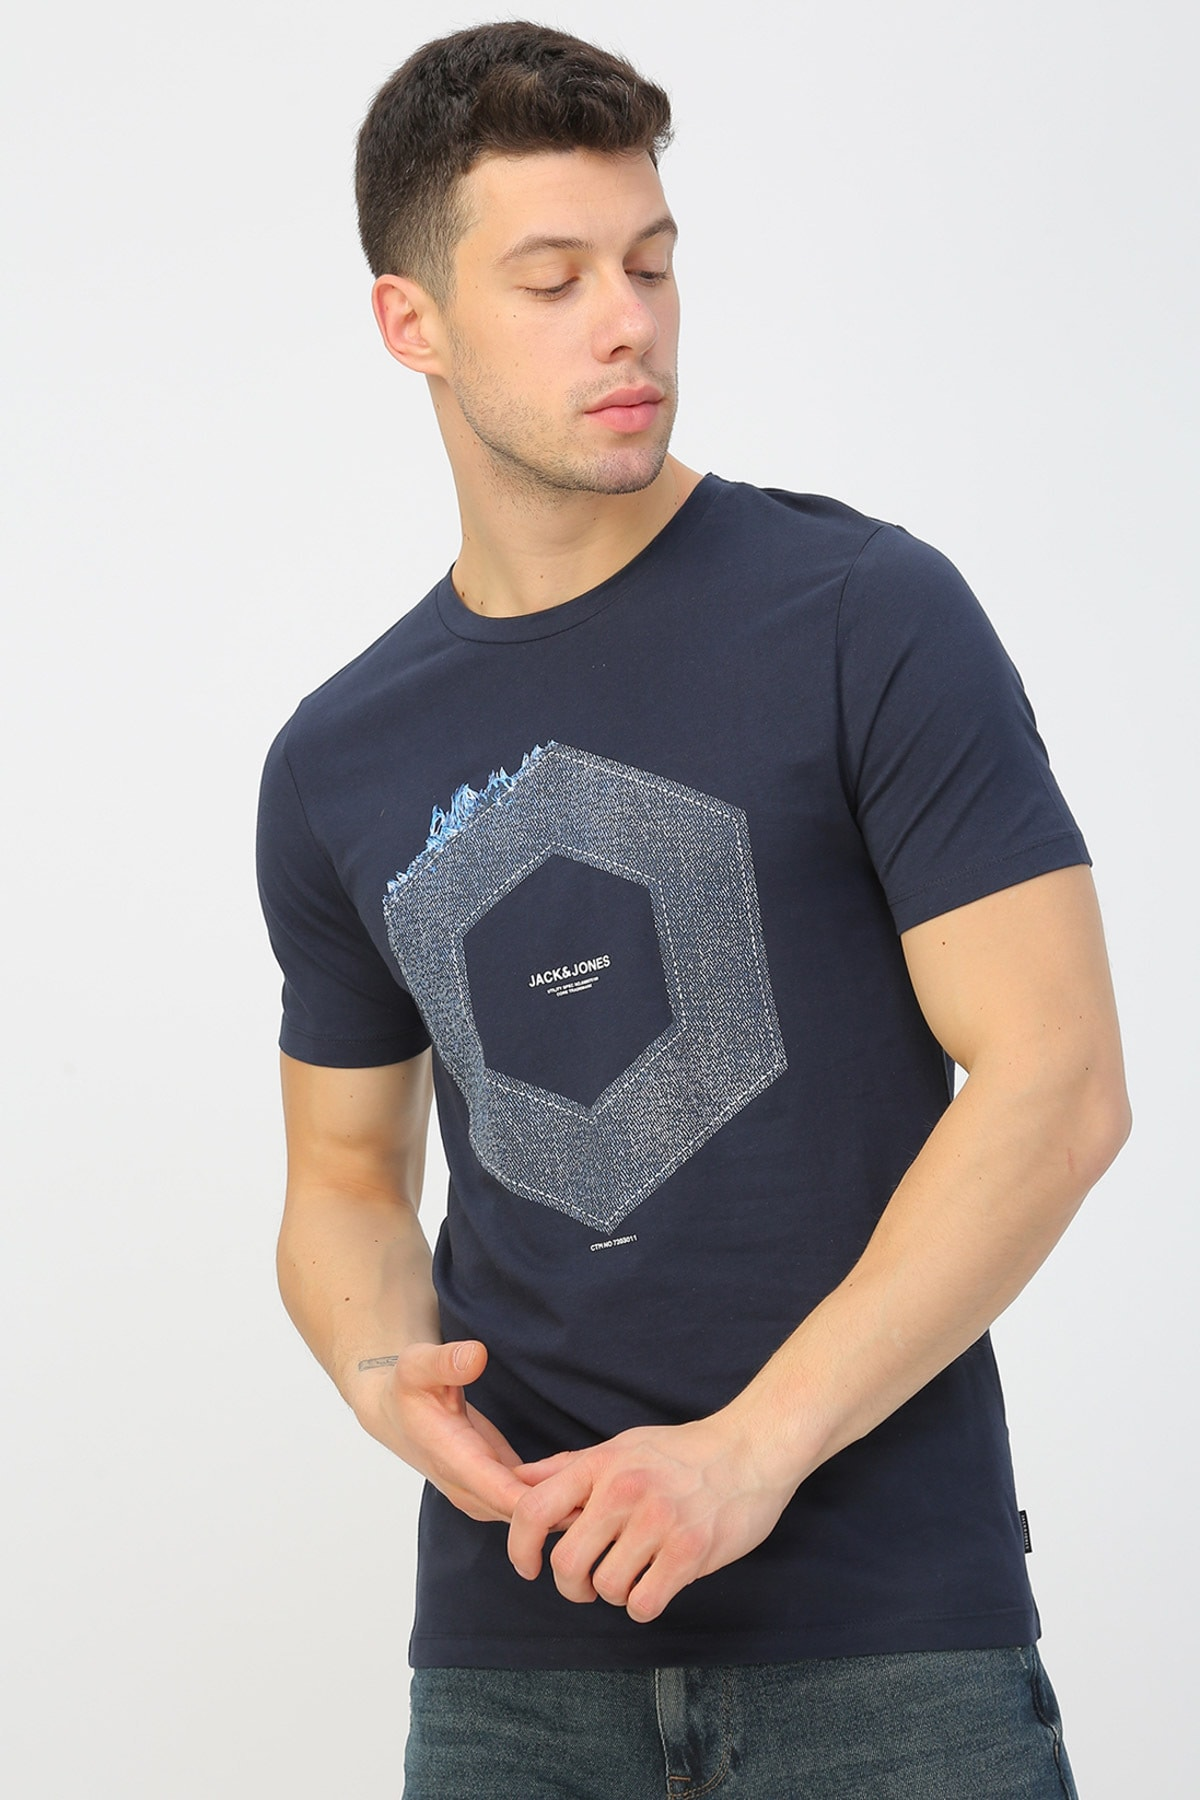 Jack & Jones T-Shirt - Tutan Core Tee SS Crew Neck 12167185 2